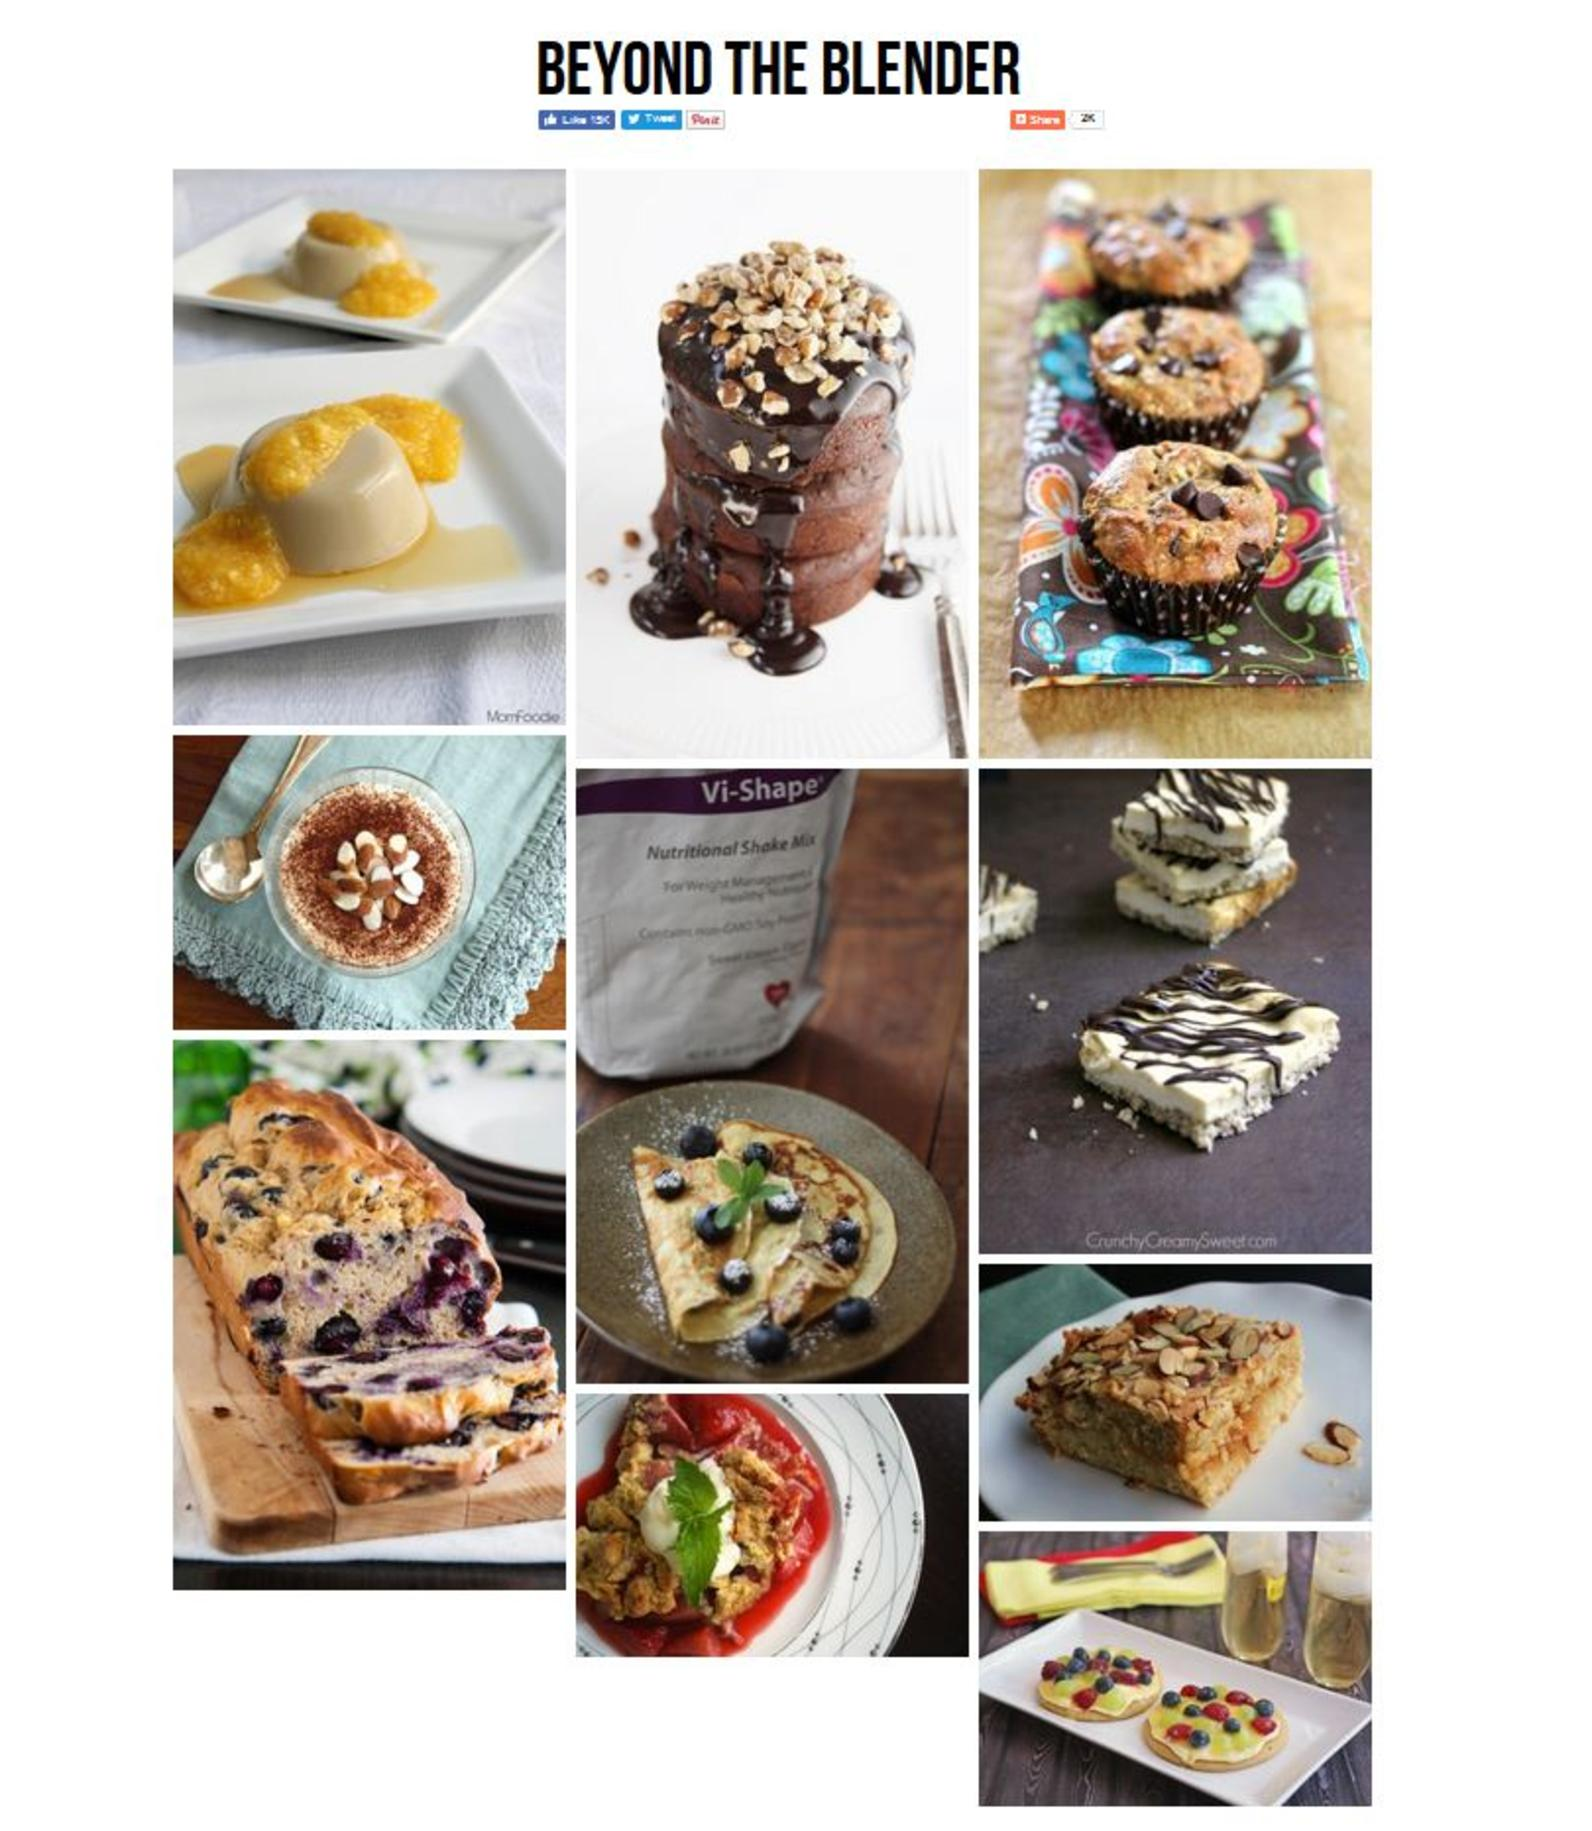 The Hard Thing About Dieting Is Many Think They Have To Give Up Baking While Trying To Lose Weight. Click These Images To Get These Healthy Baking Recipes. More Recipes Can Be Found At www.beyondtheblender.com